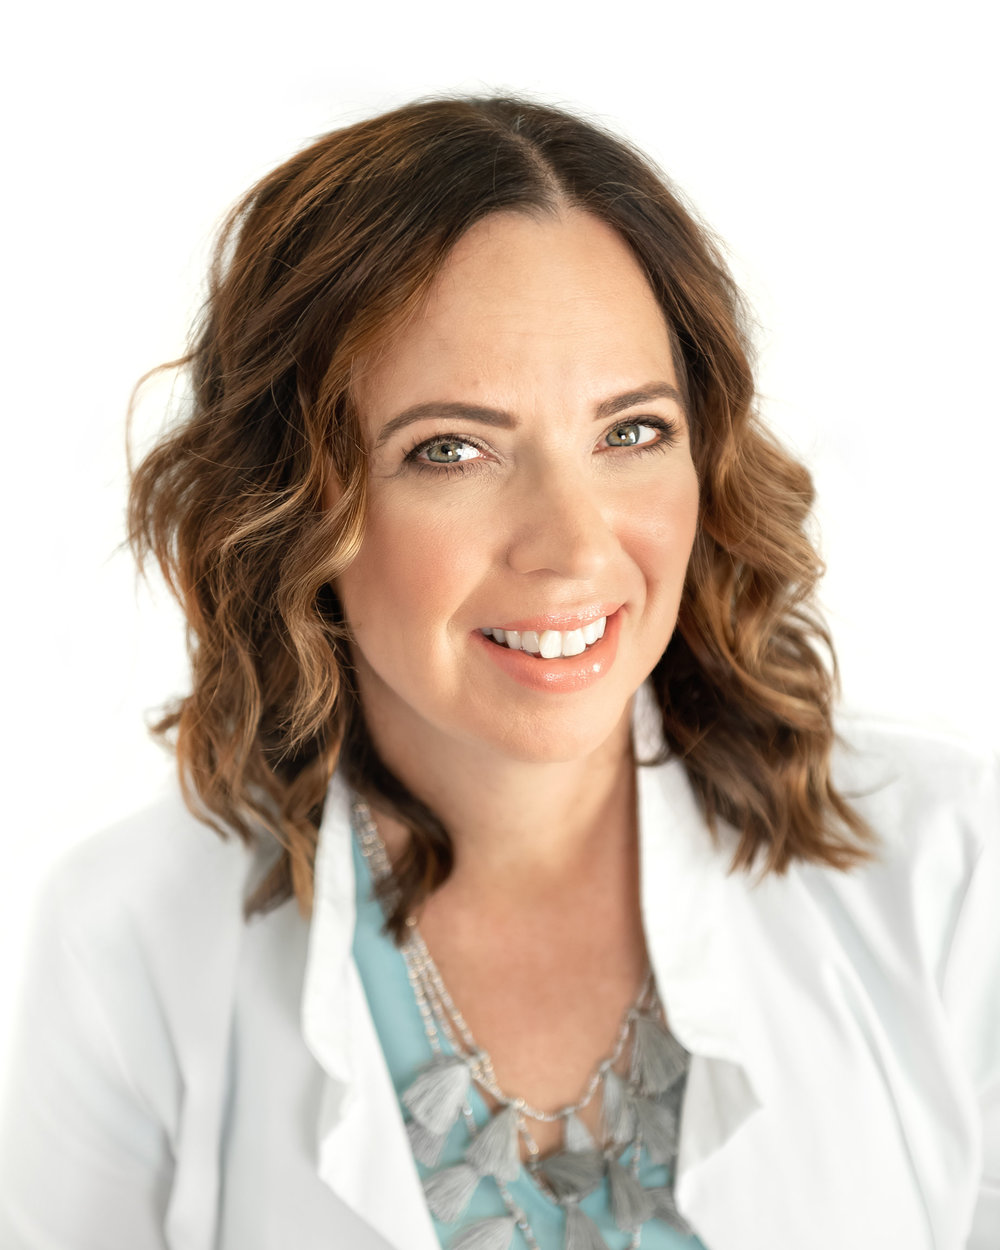 Warmly,Laurie - Natural Hormone & Fertility Expert